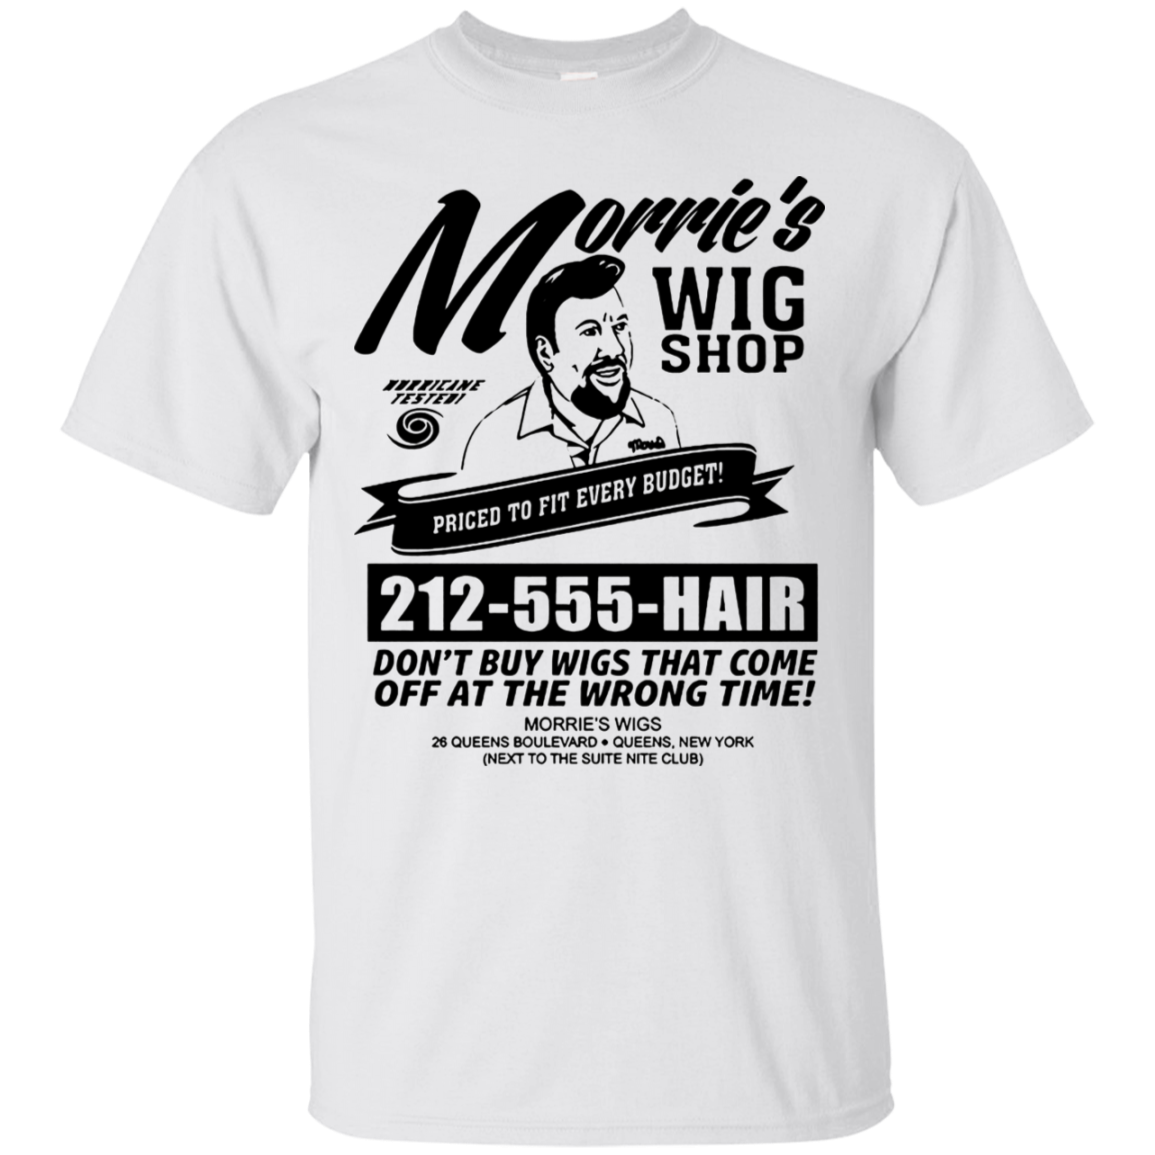 Chuck low morrie s wig shop price to fit every budget t shirt